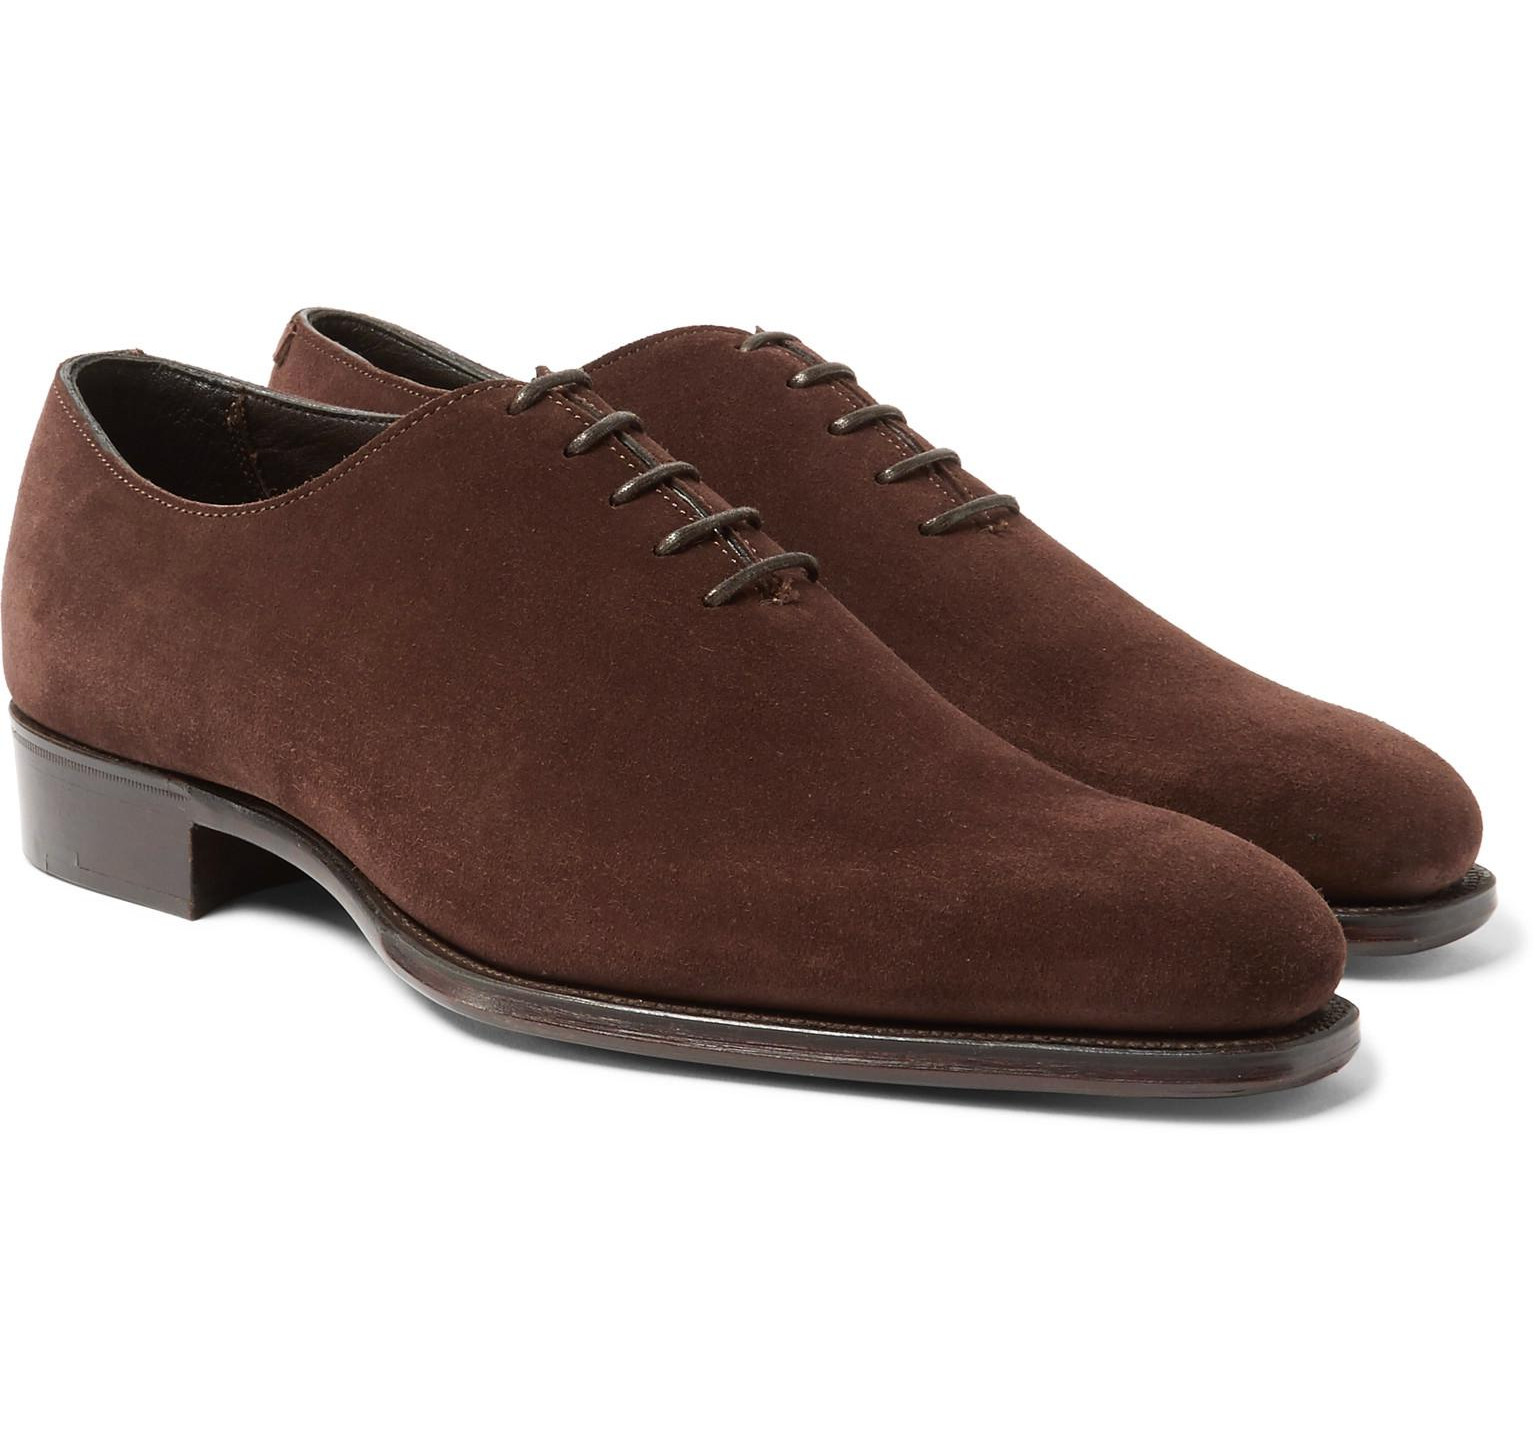 George Cleverley Whole-Cut Suede Oxford Shoes